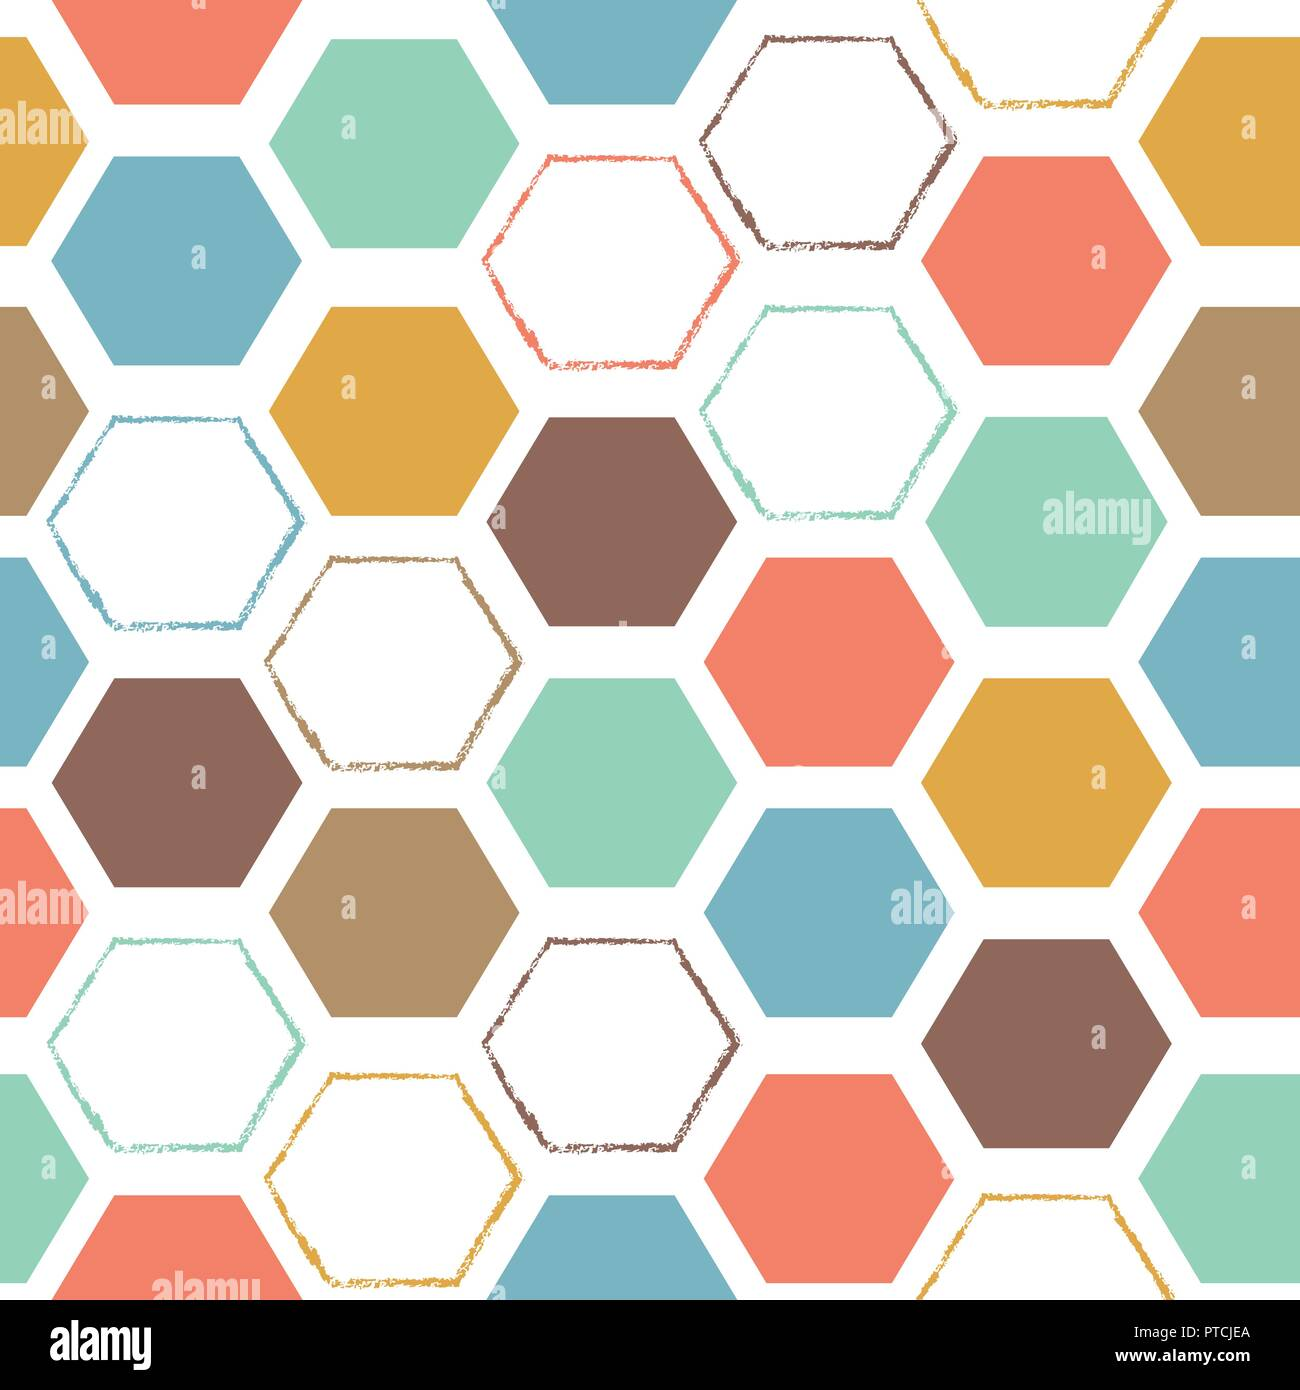 Vector Abstract Hexagonal Colorful Seamless Pattern Background Ideal For Fabrics Textiles Scrapbooking Wallpapers And Crafts Stock Vector Image Art Alamy